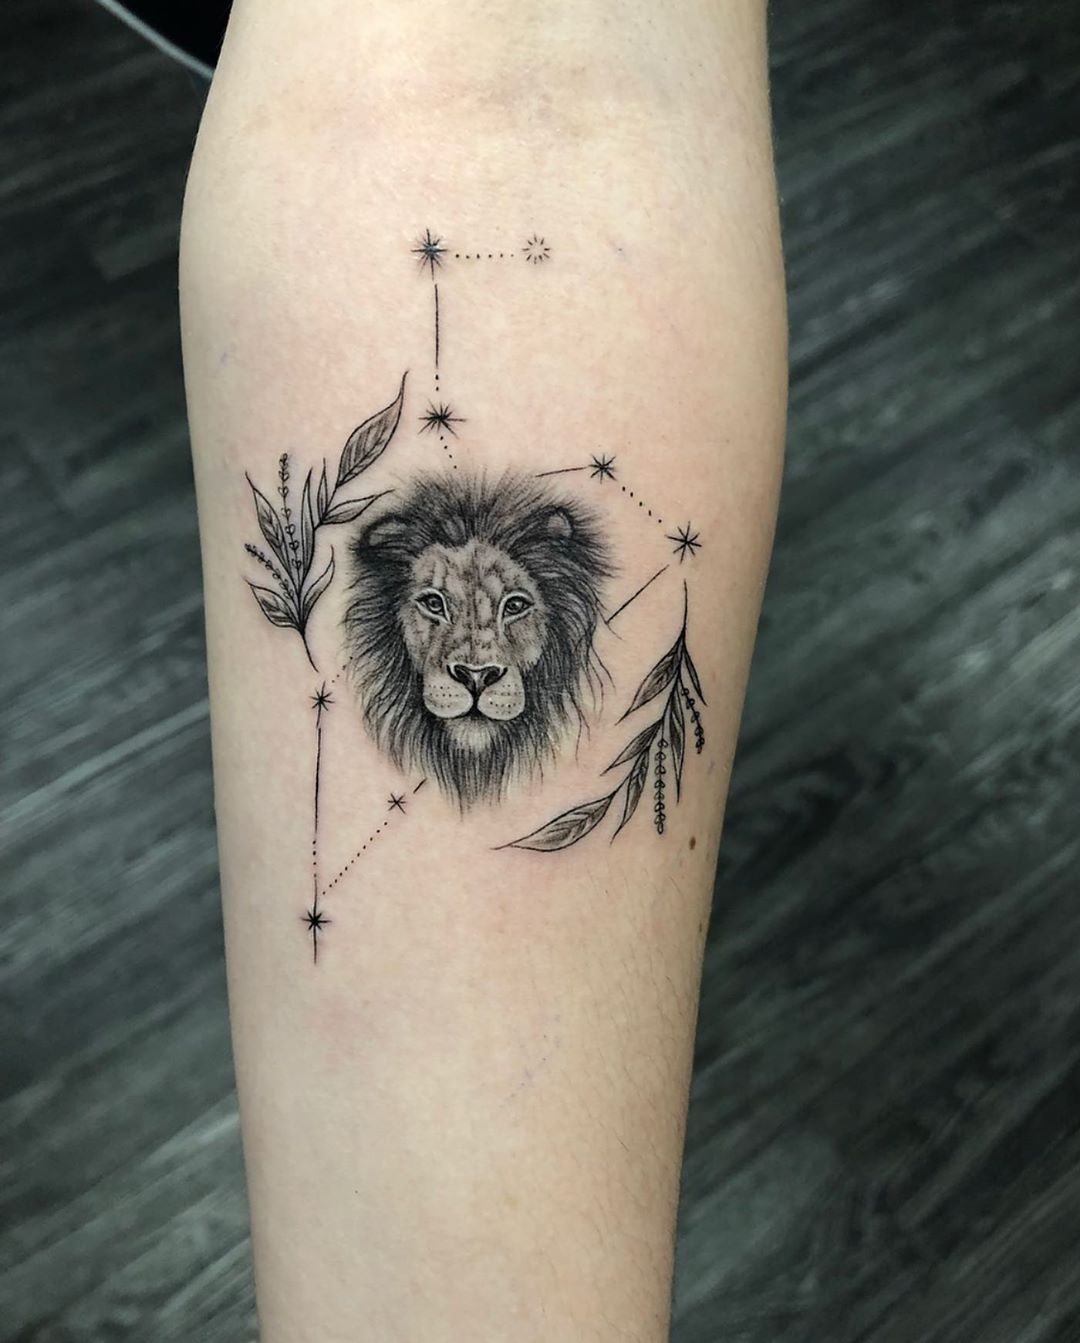 16 Leo Tattoos To Get That Are Bold, Proud & Impossible To Ignore | I AM & CO®